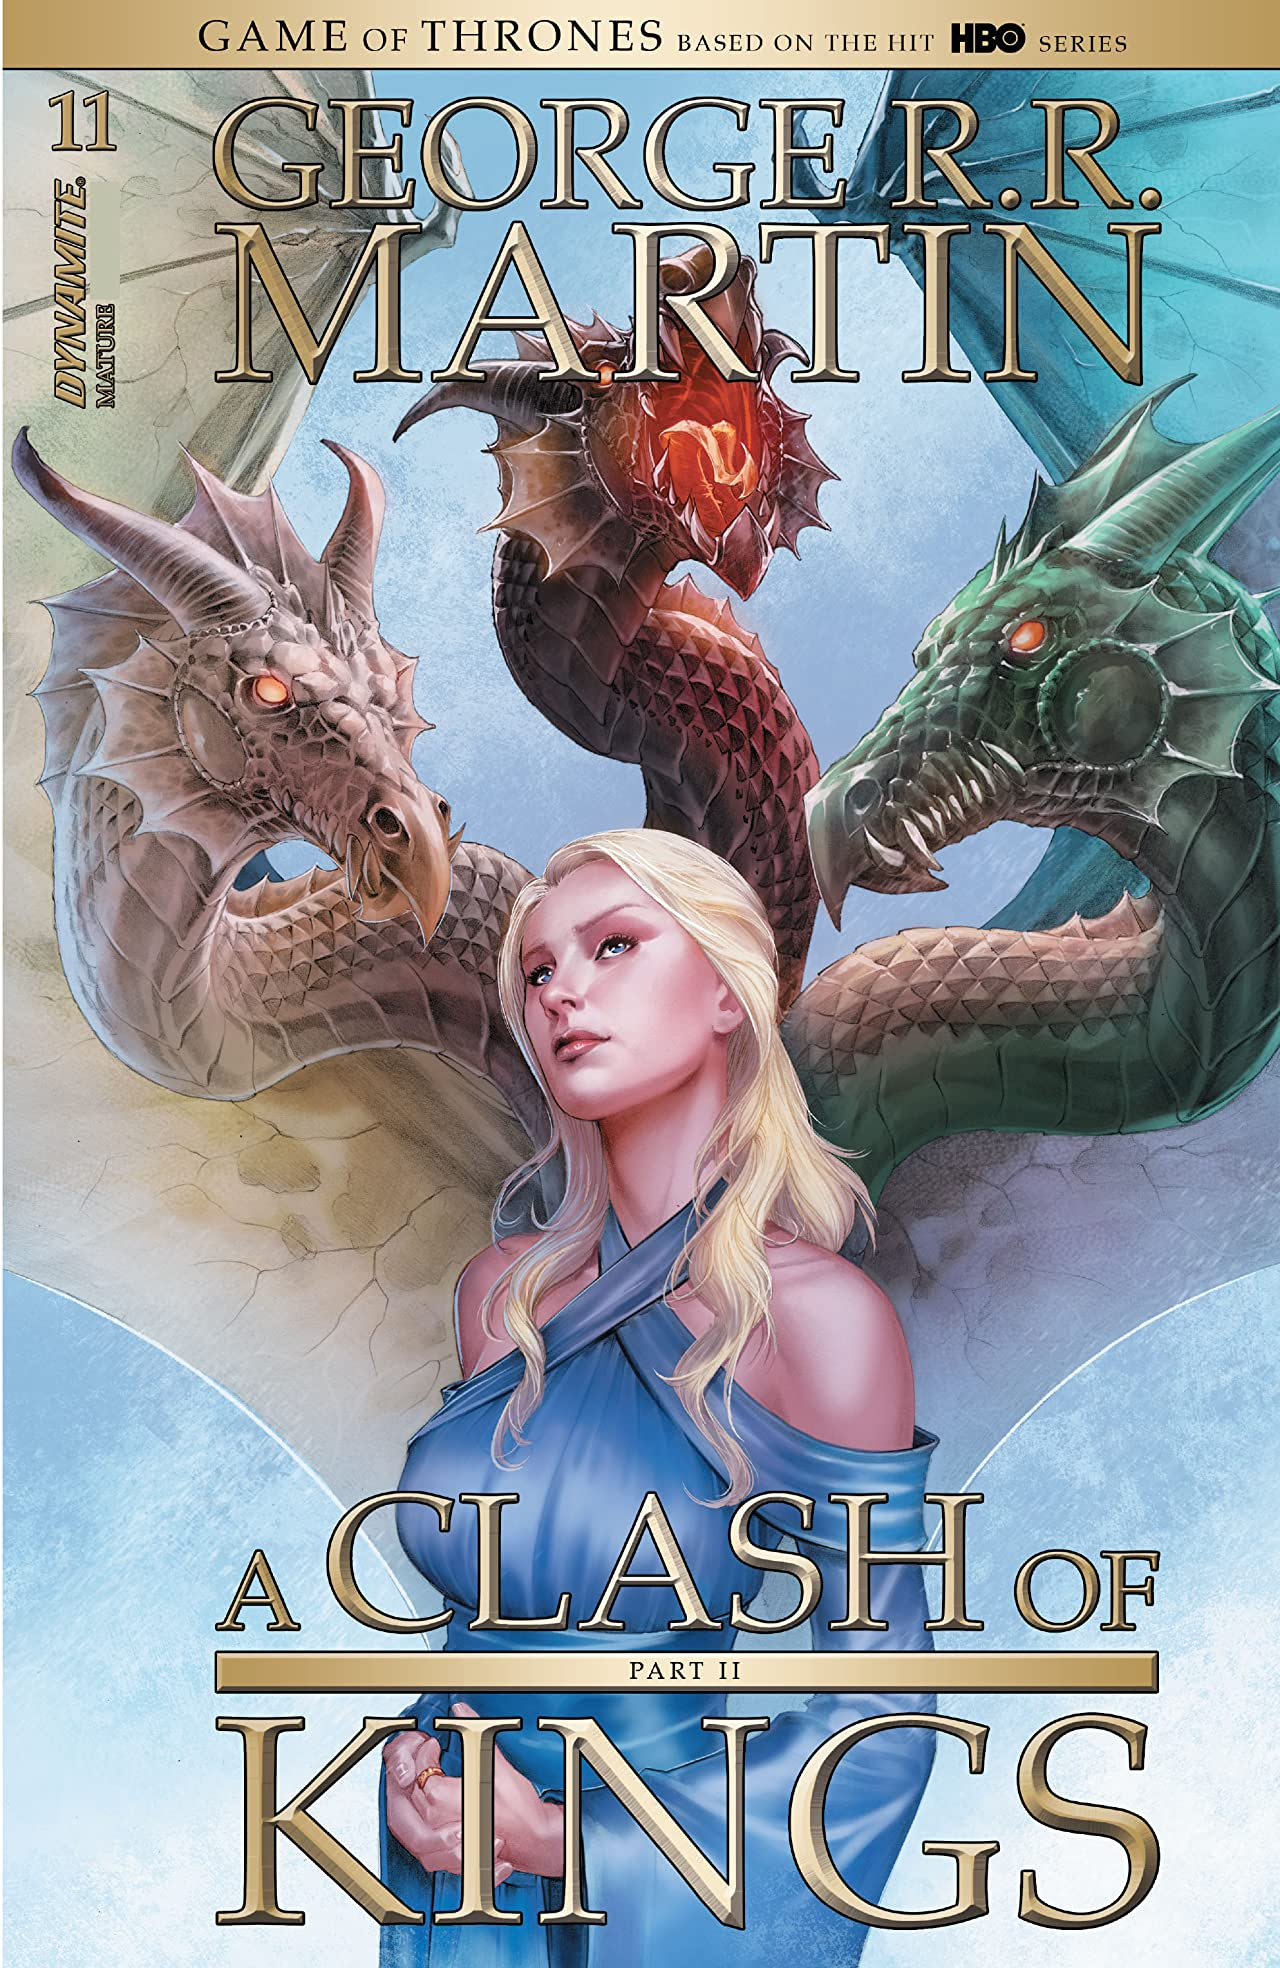 George R.R. Martin's A Clash of Kings: The Comic Book Vol. 2 #11